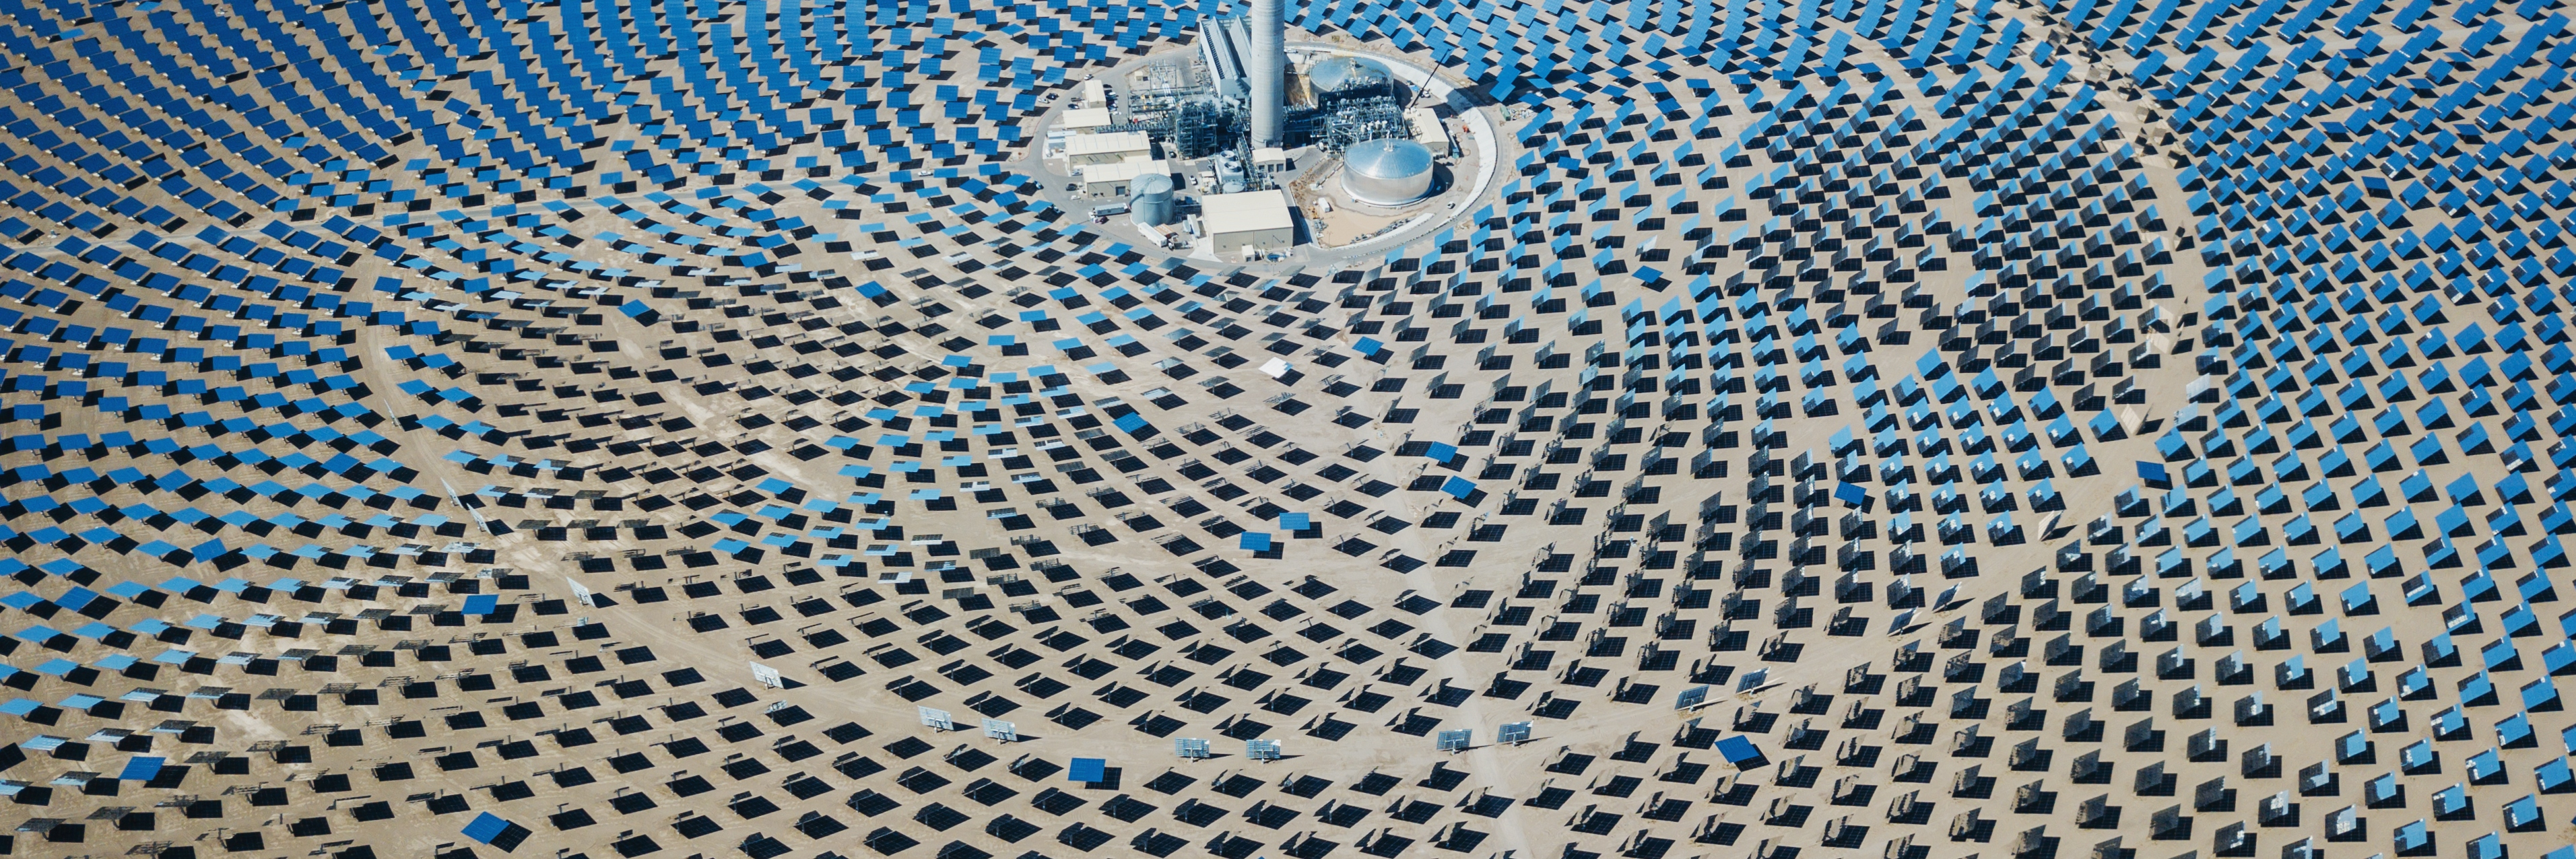 Aerial view of solar thermal power plant station in the desert to the horizon.